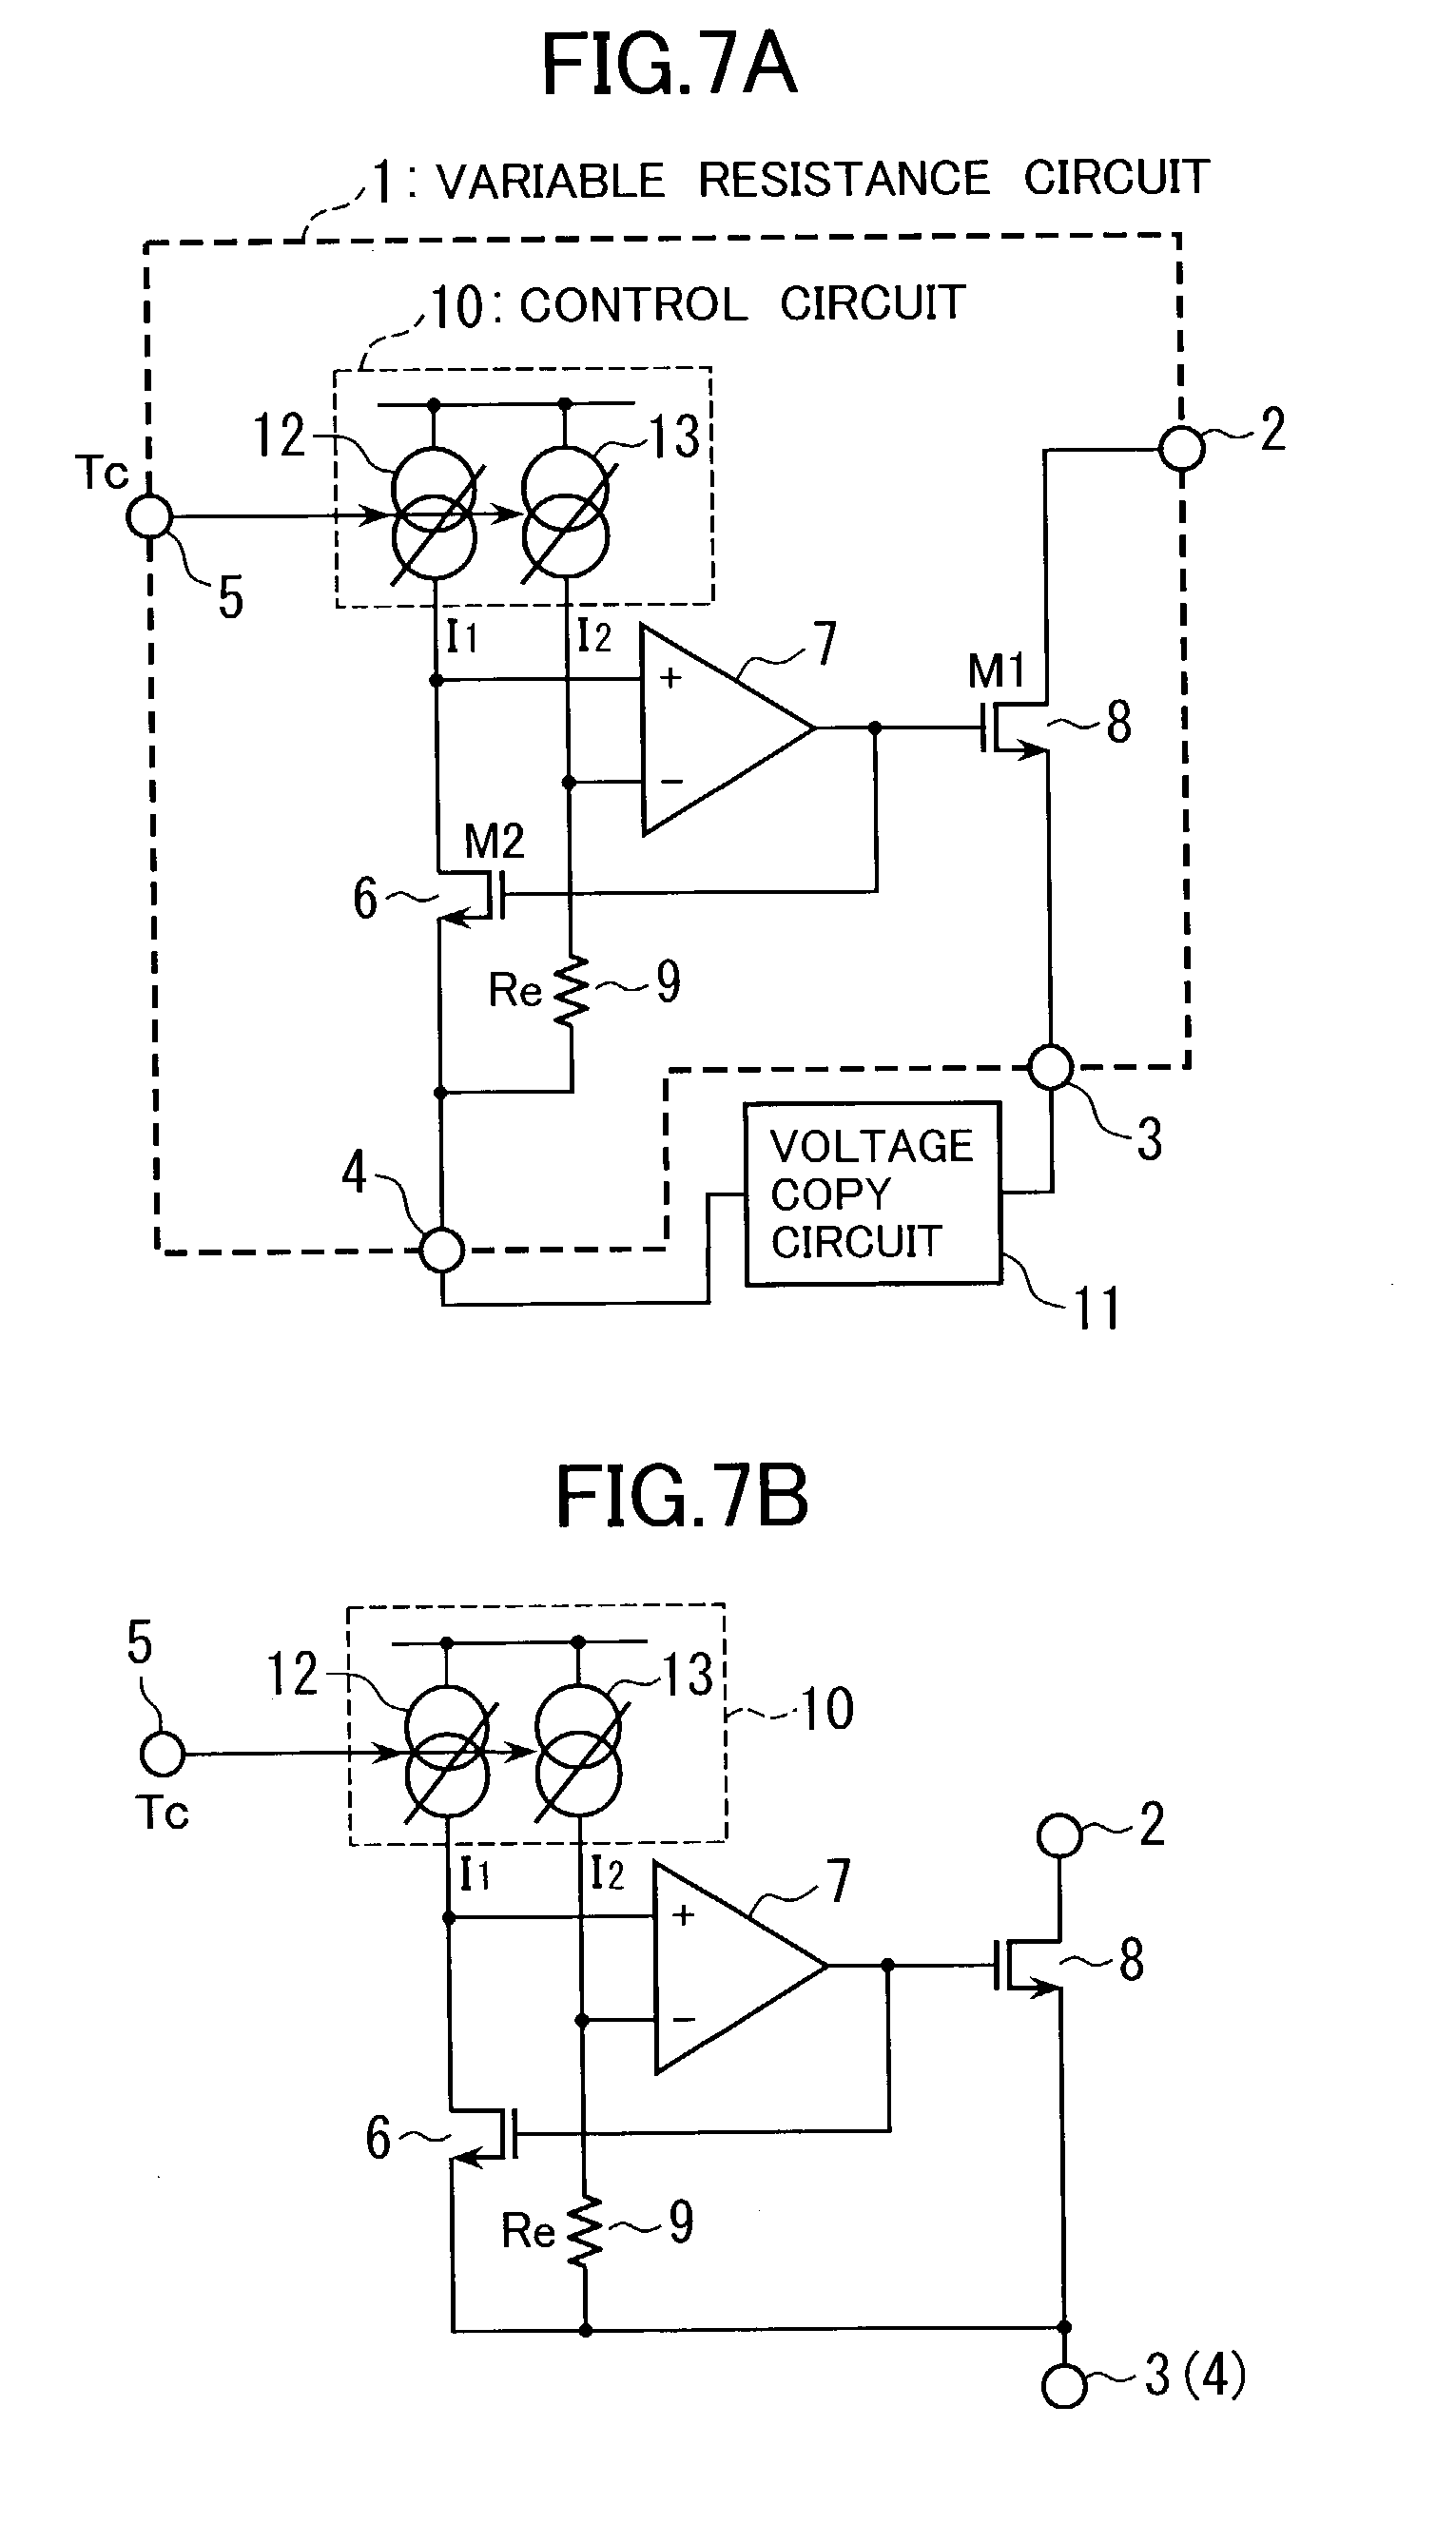 Triode Variableresistance Threshold Control Switch Circuit Diagram Variable Resistor Patent Us20030076148 Resistance And Application